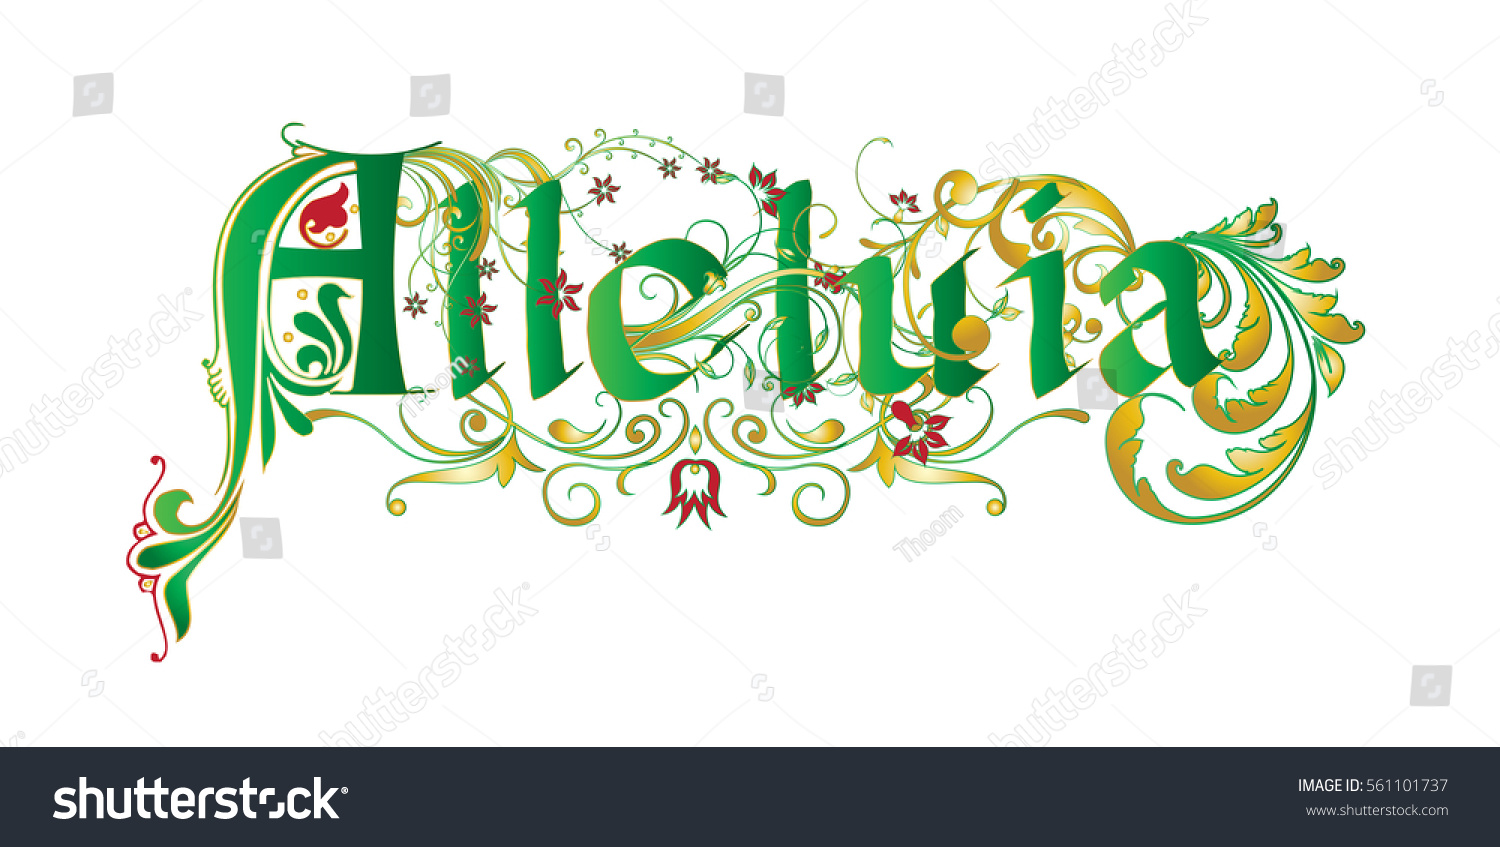 alleluia he risen easter resurrection holiday stock vector palm sunday clip art in black and white palm sunday clip art religious free